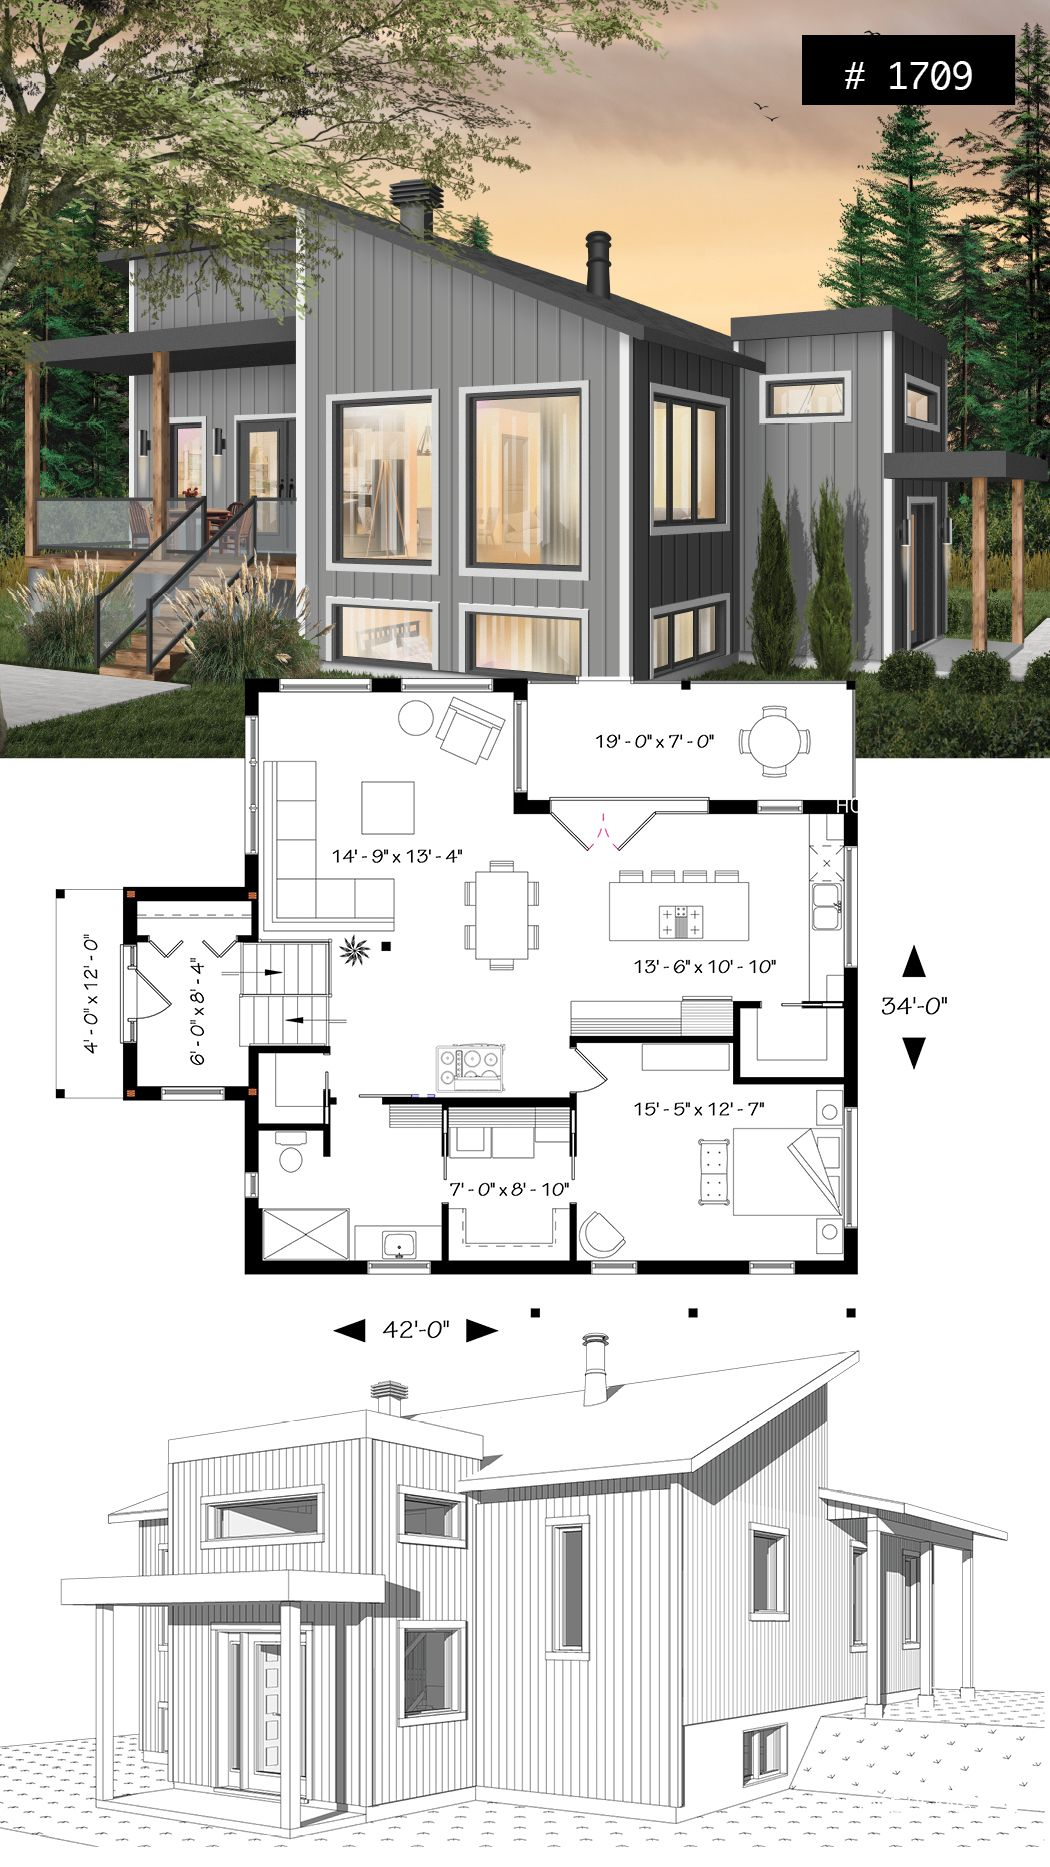 Discover The Plan 1709 Billy Which Will Please You For Its 1 Bedrooms And For Its Modern Design Styles Unique House Plans Small Modern House Plans Contemporary House Plans